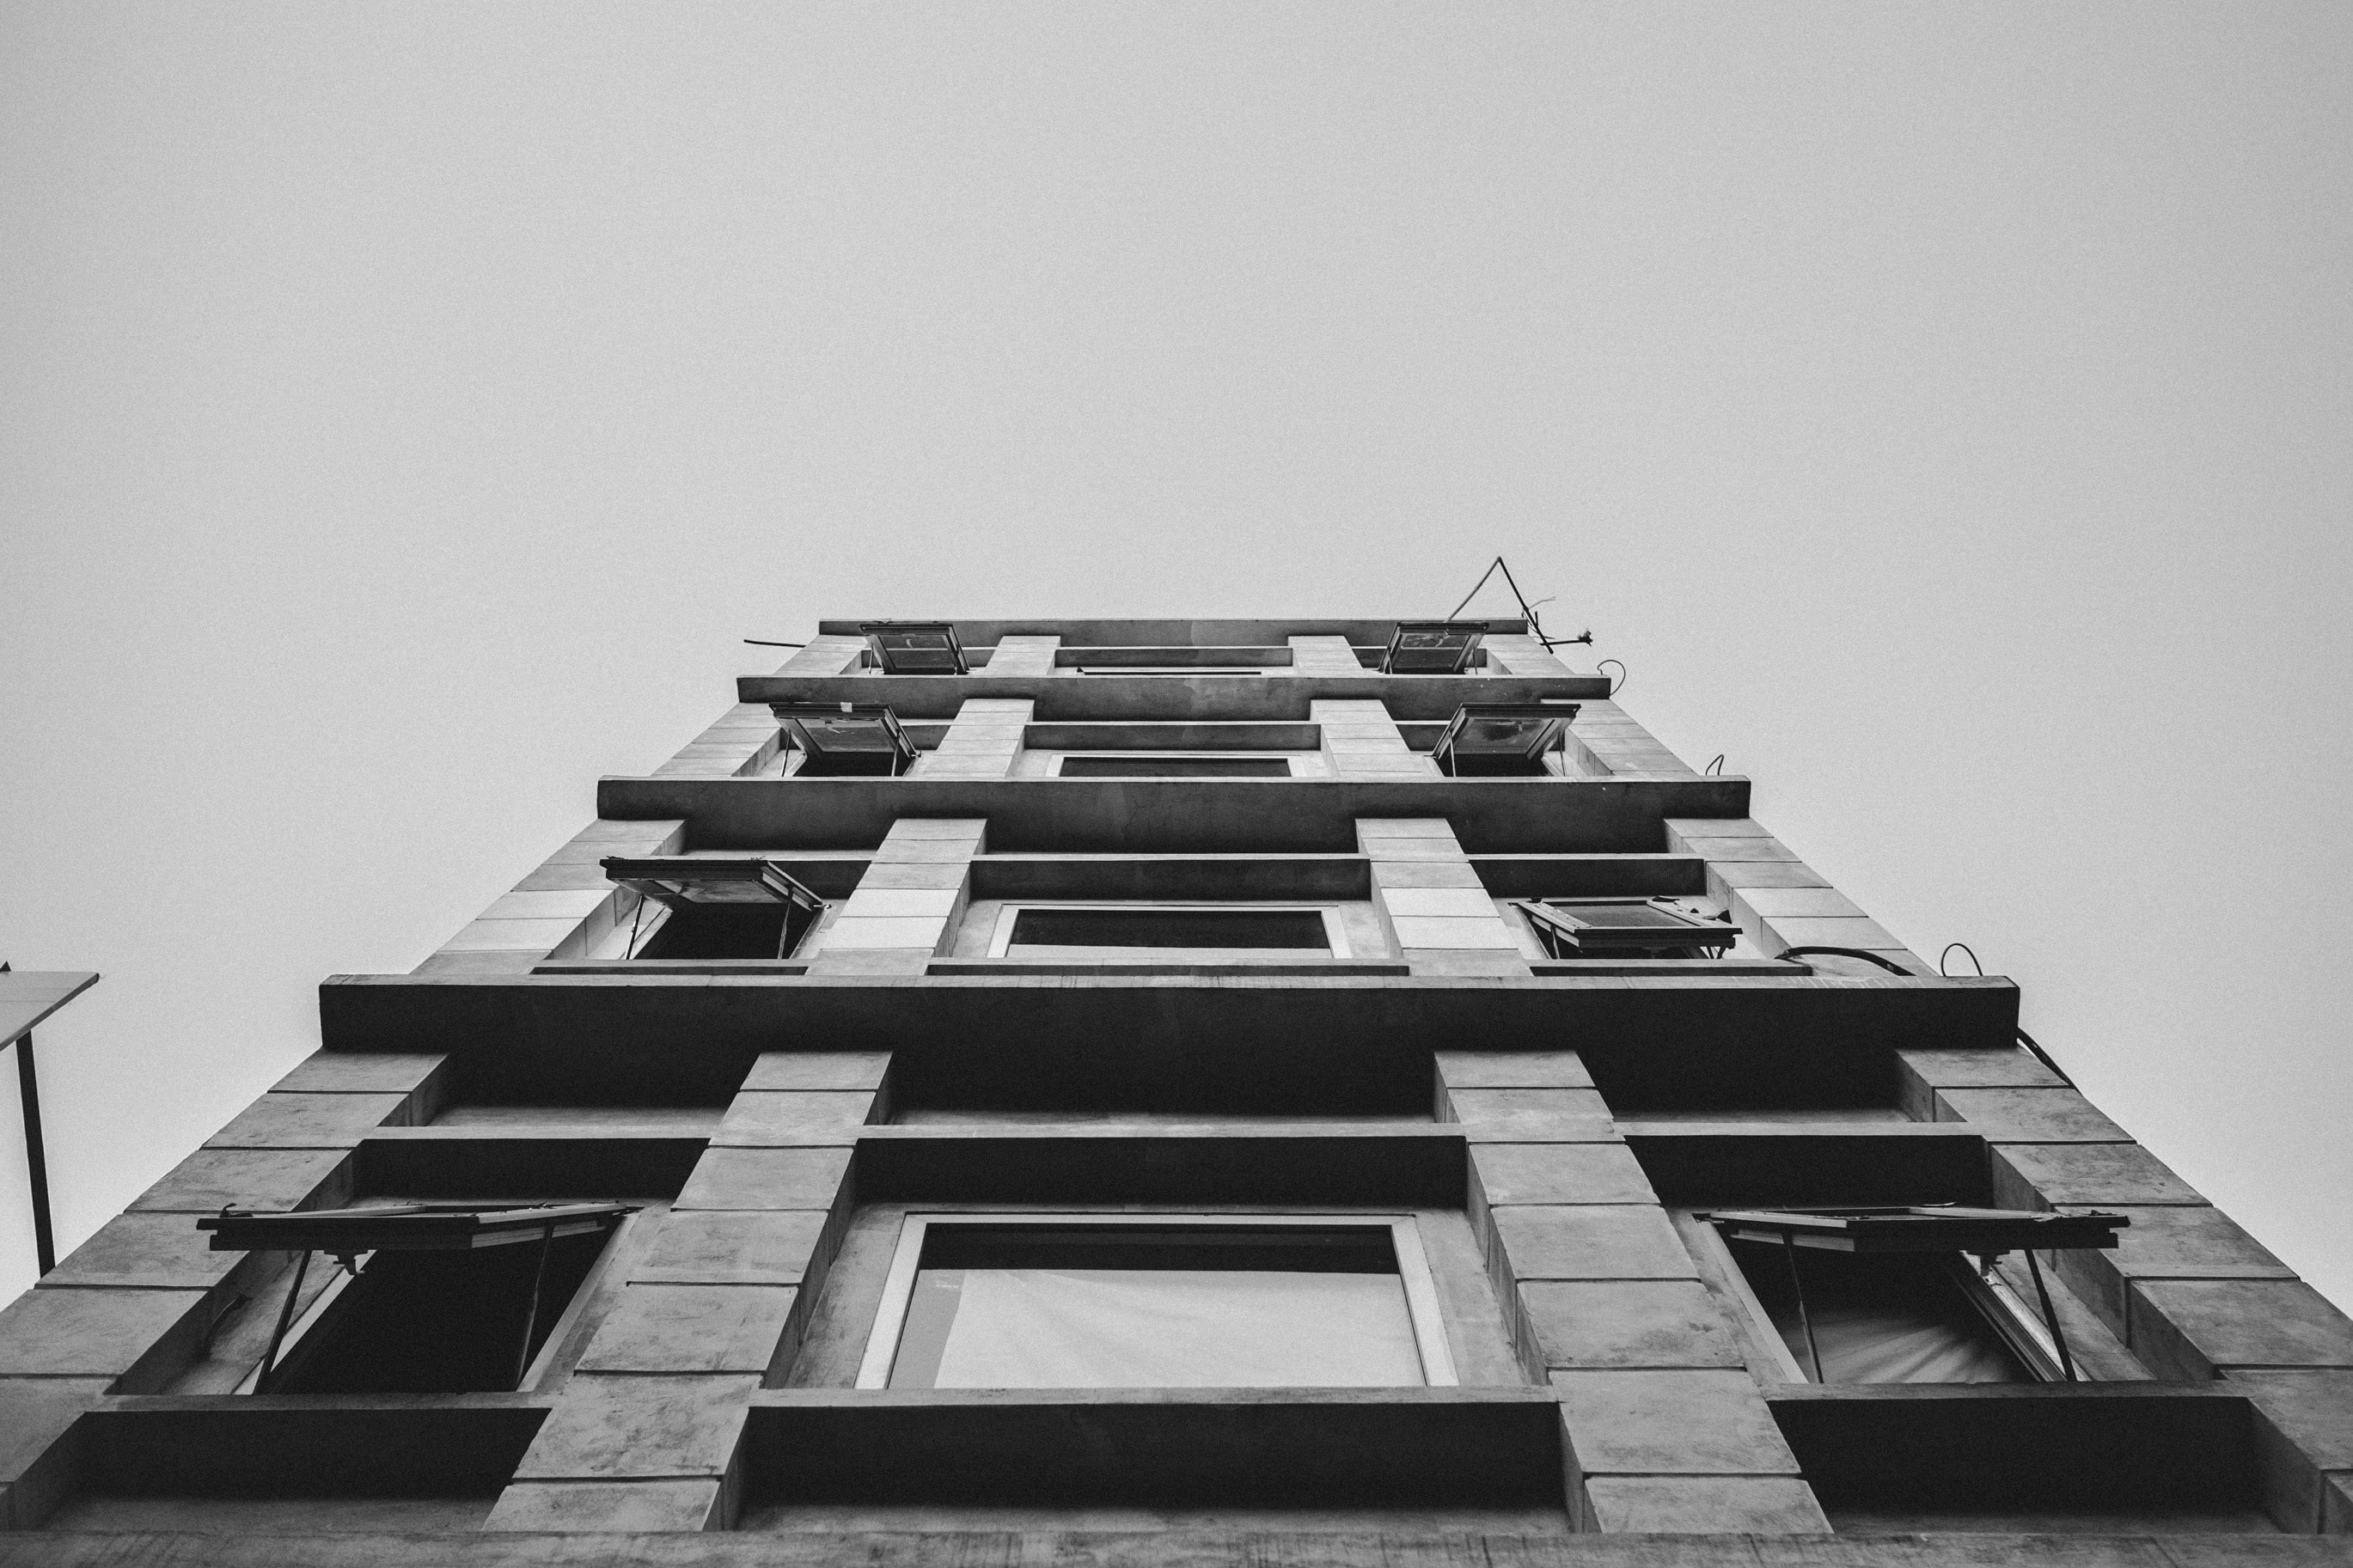 worms eye view on building